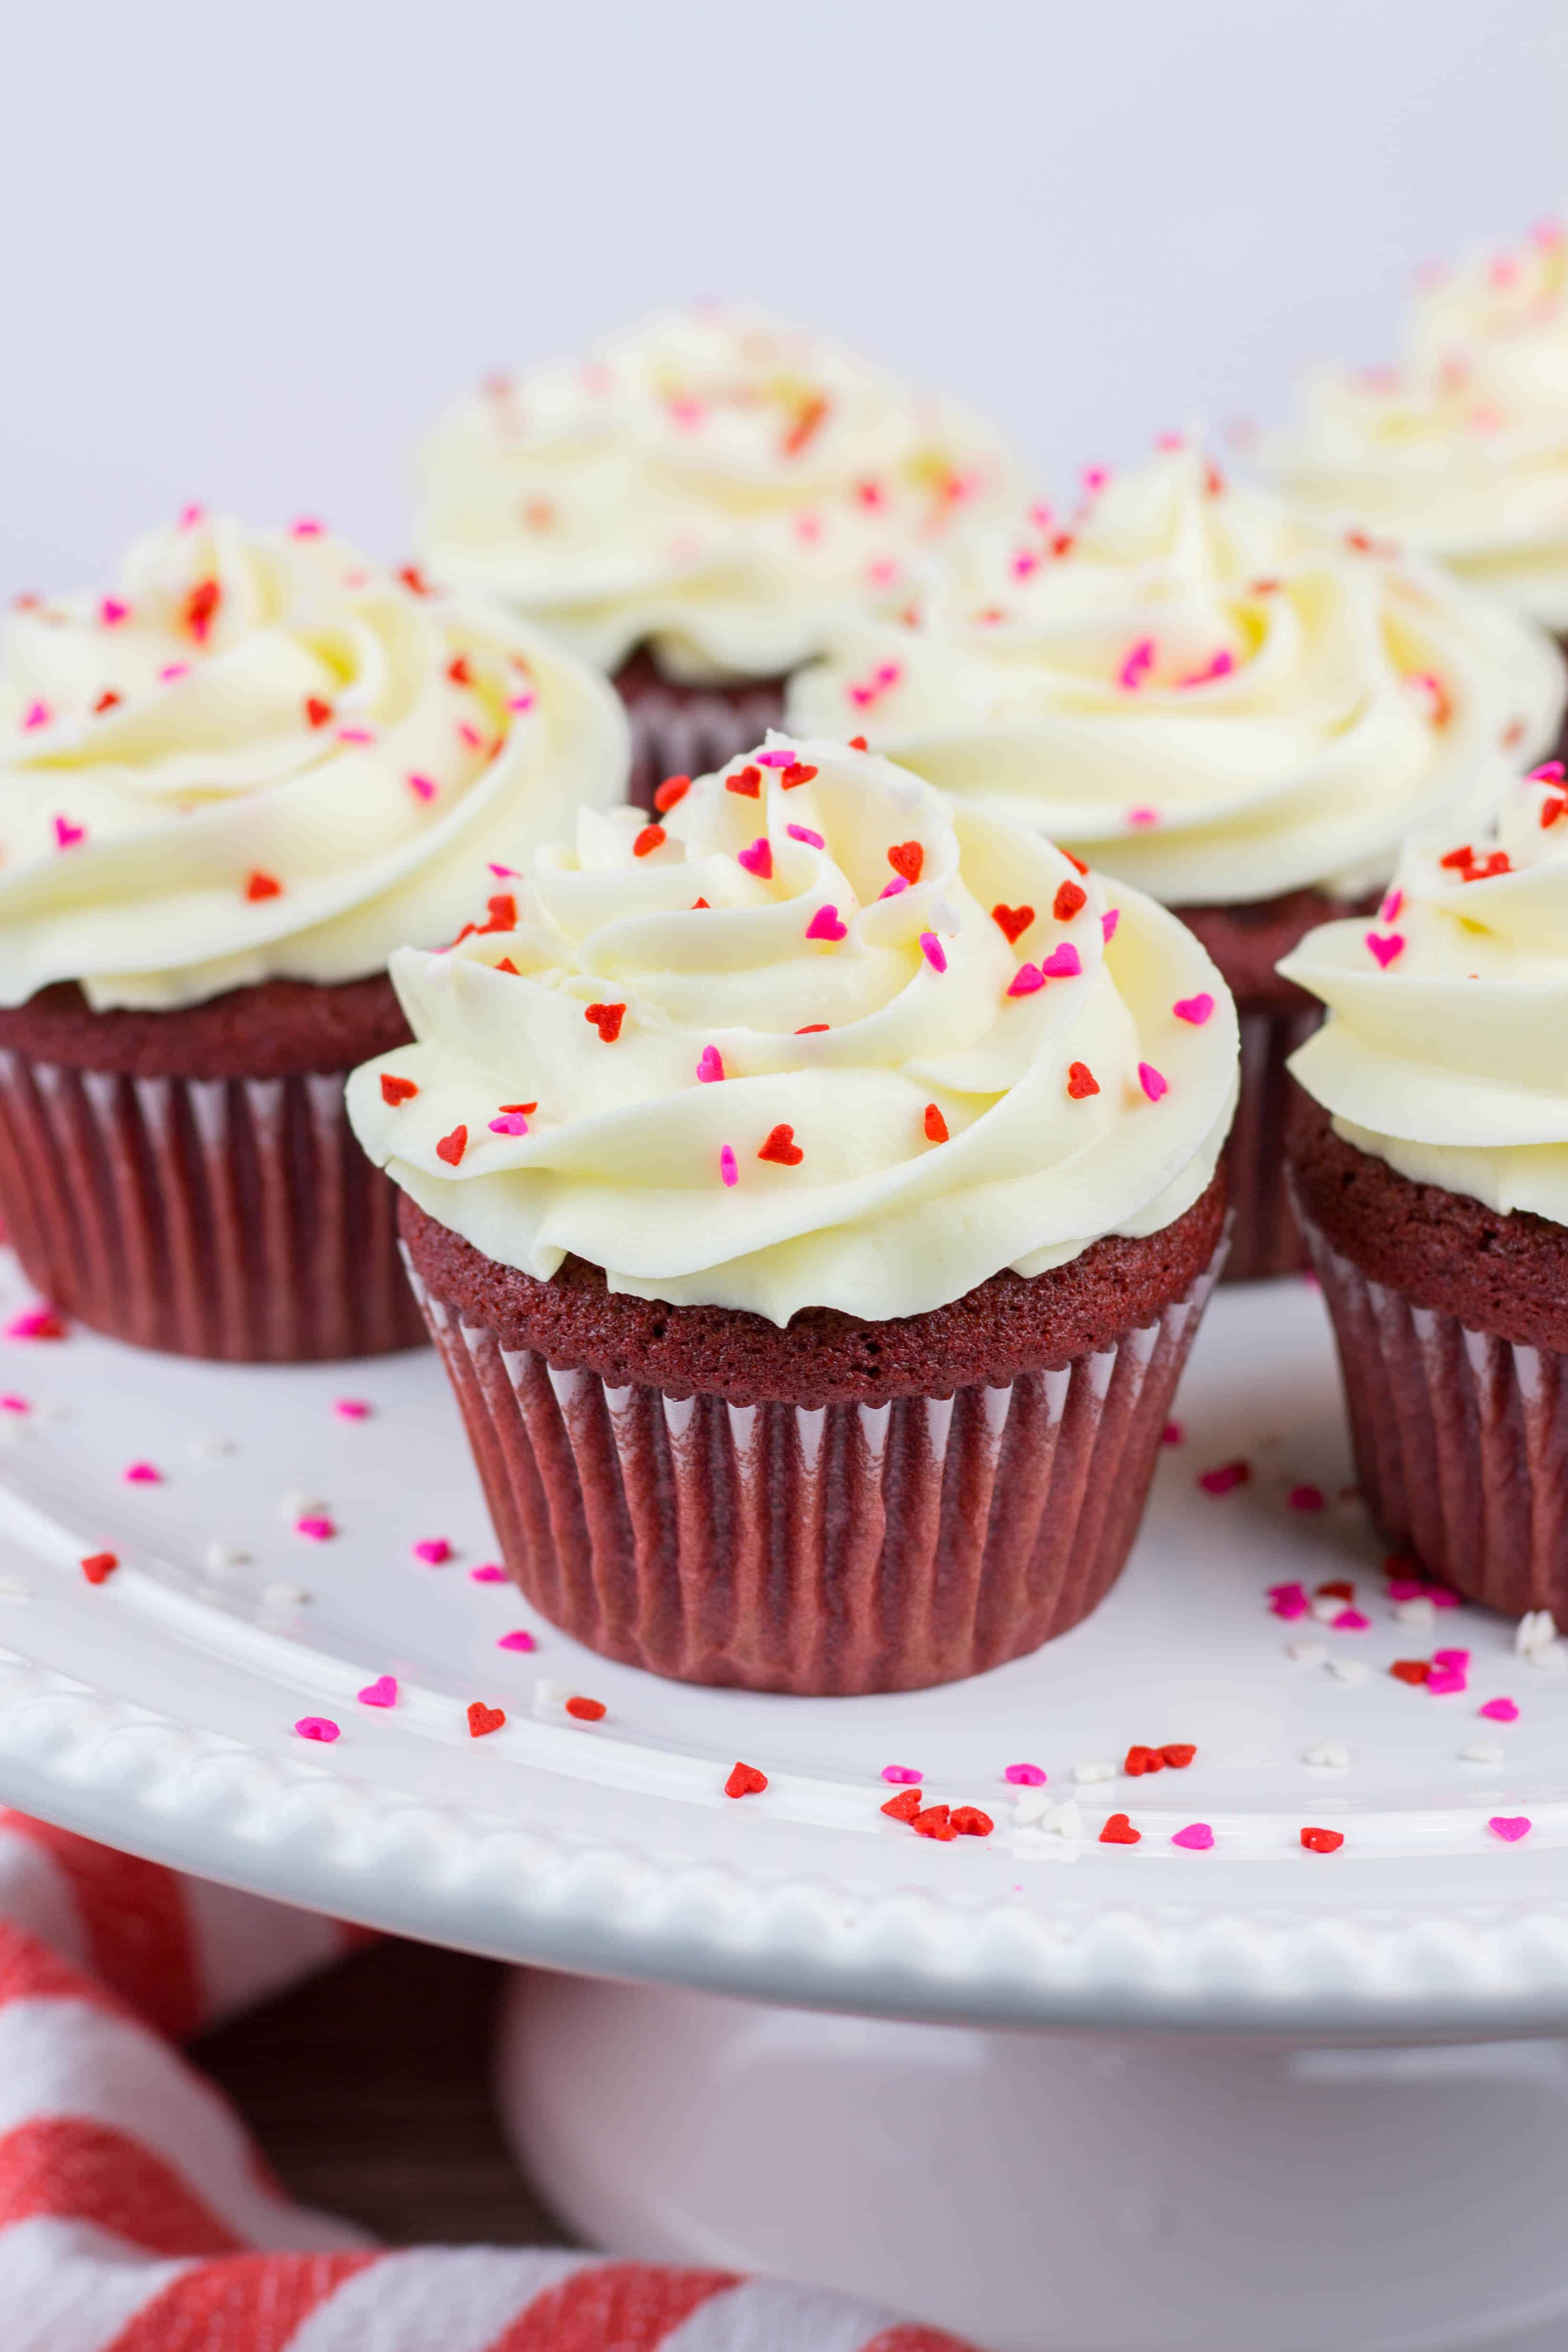 Red Velvet Cupcakes with cream cheese frosting is a perfect St. Valentine's Day recipe to surprise your loved ones. These easy to make from scratch cupcakes will become your favorite!